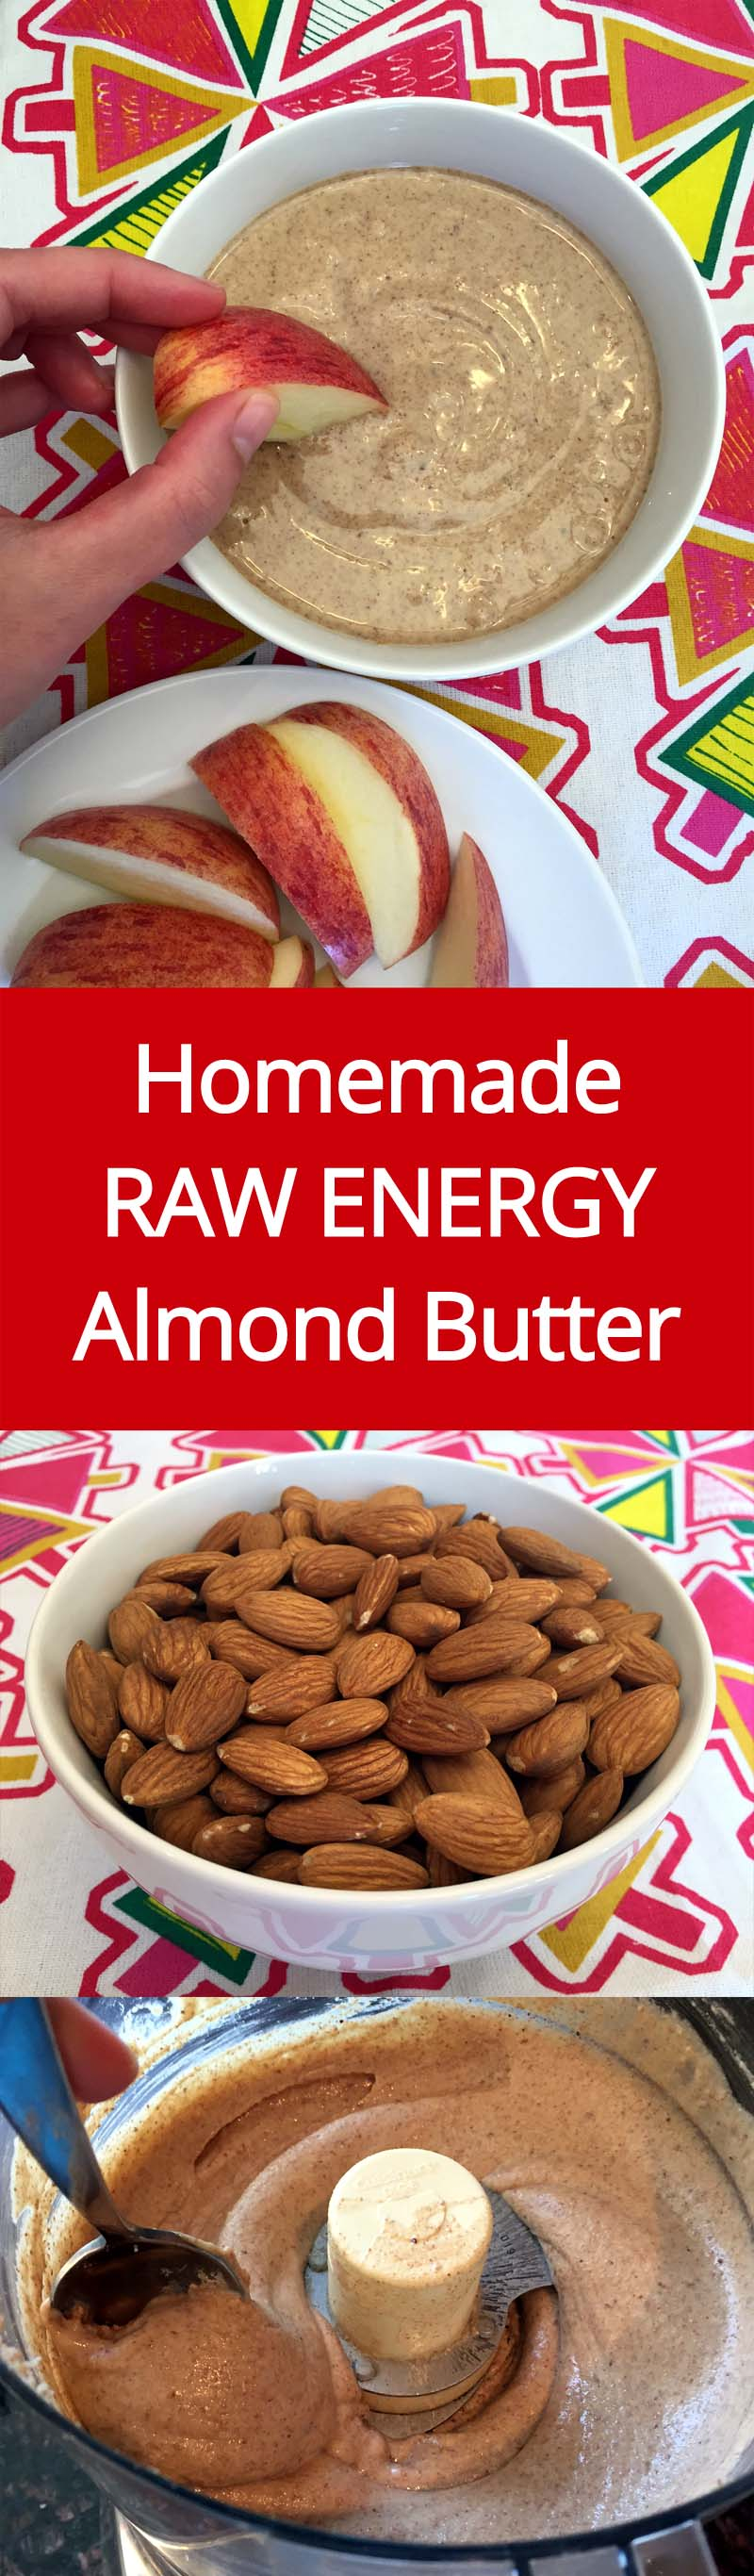 Homemade almond butter recipe how to make raw organic almond homemade almond butter recipe how to make raw organic almond butter with your food processor forumfinder Gallery